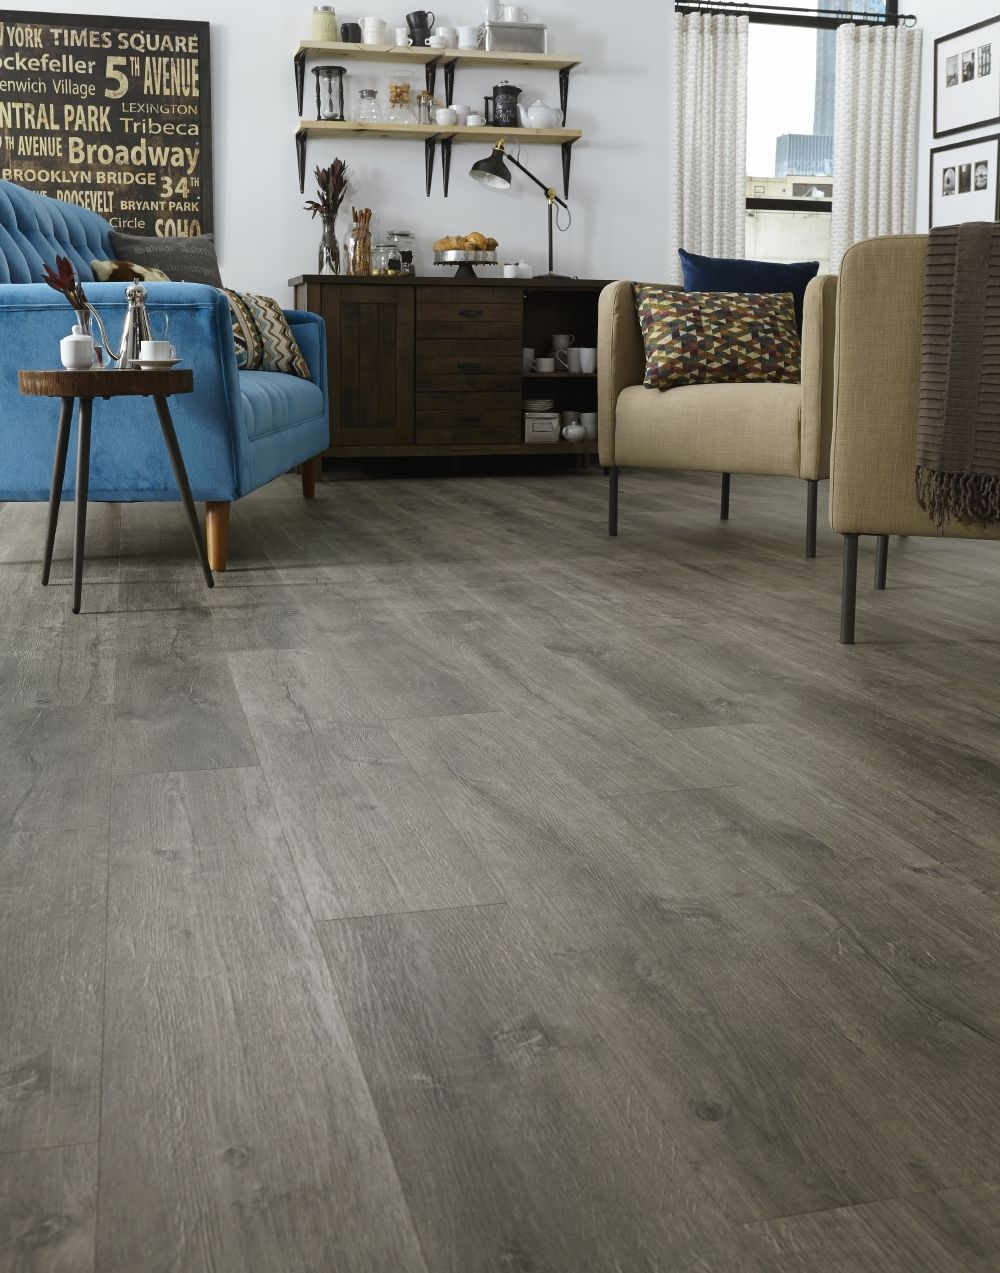 Weather Wiinter Well With Adura Max Aspen Crafted With A 100 Waterproof Hydroloc Core Luxury Vinyl Plank Flooring Best Vinyl Flooring Luxury Vinyl Plank